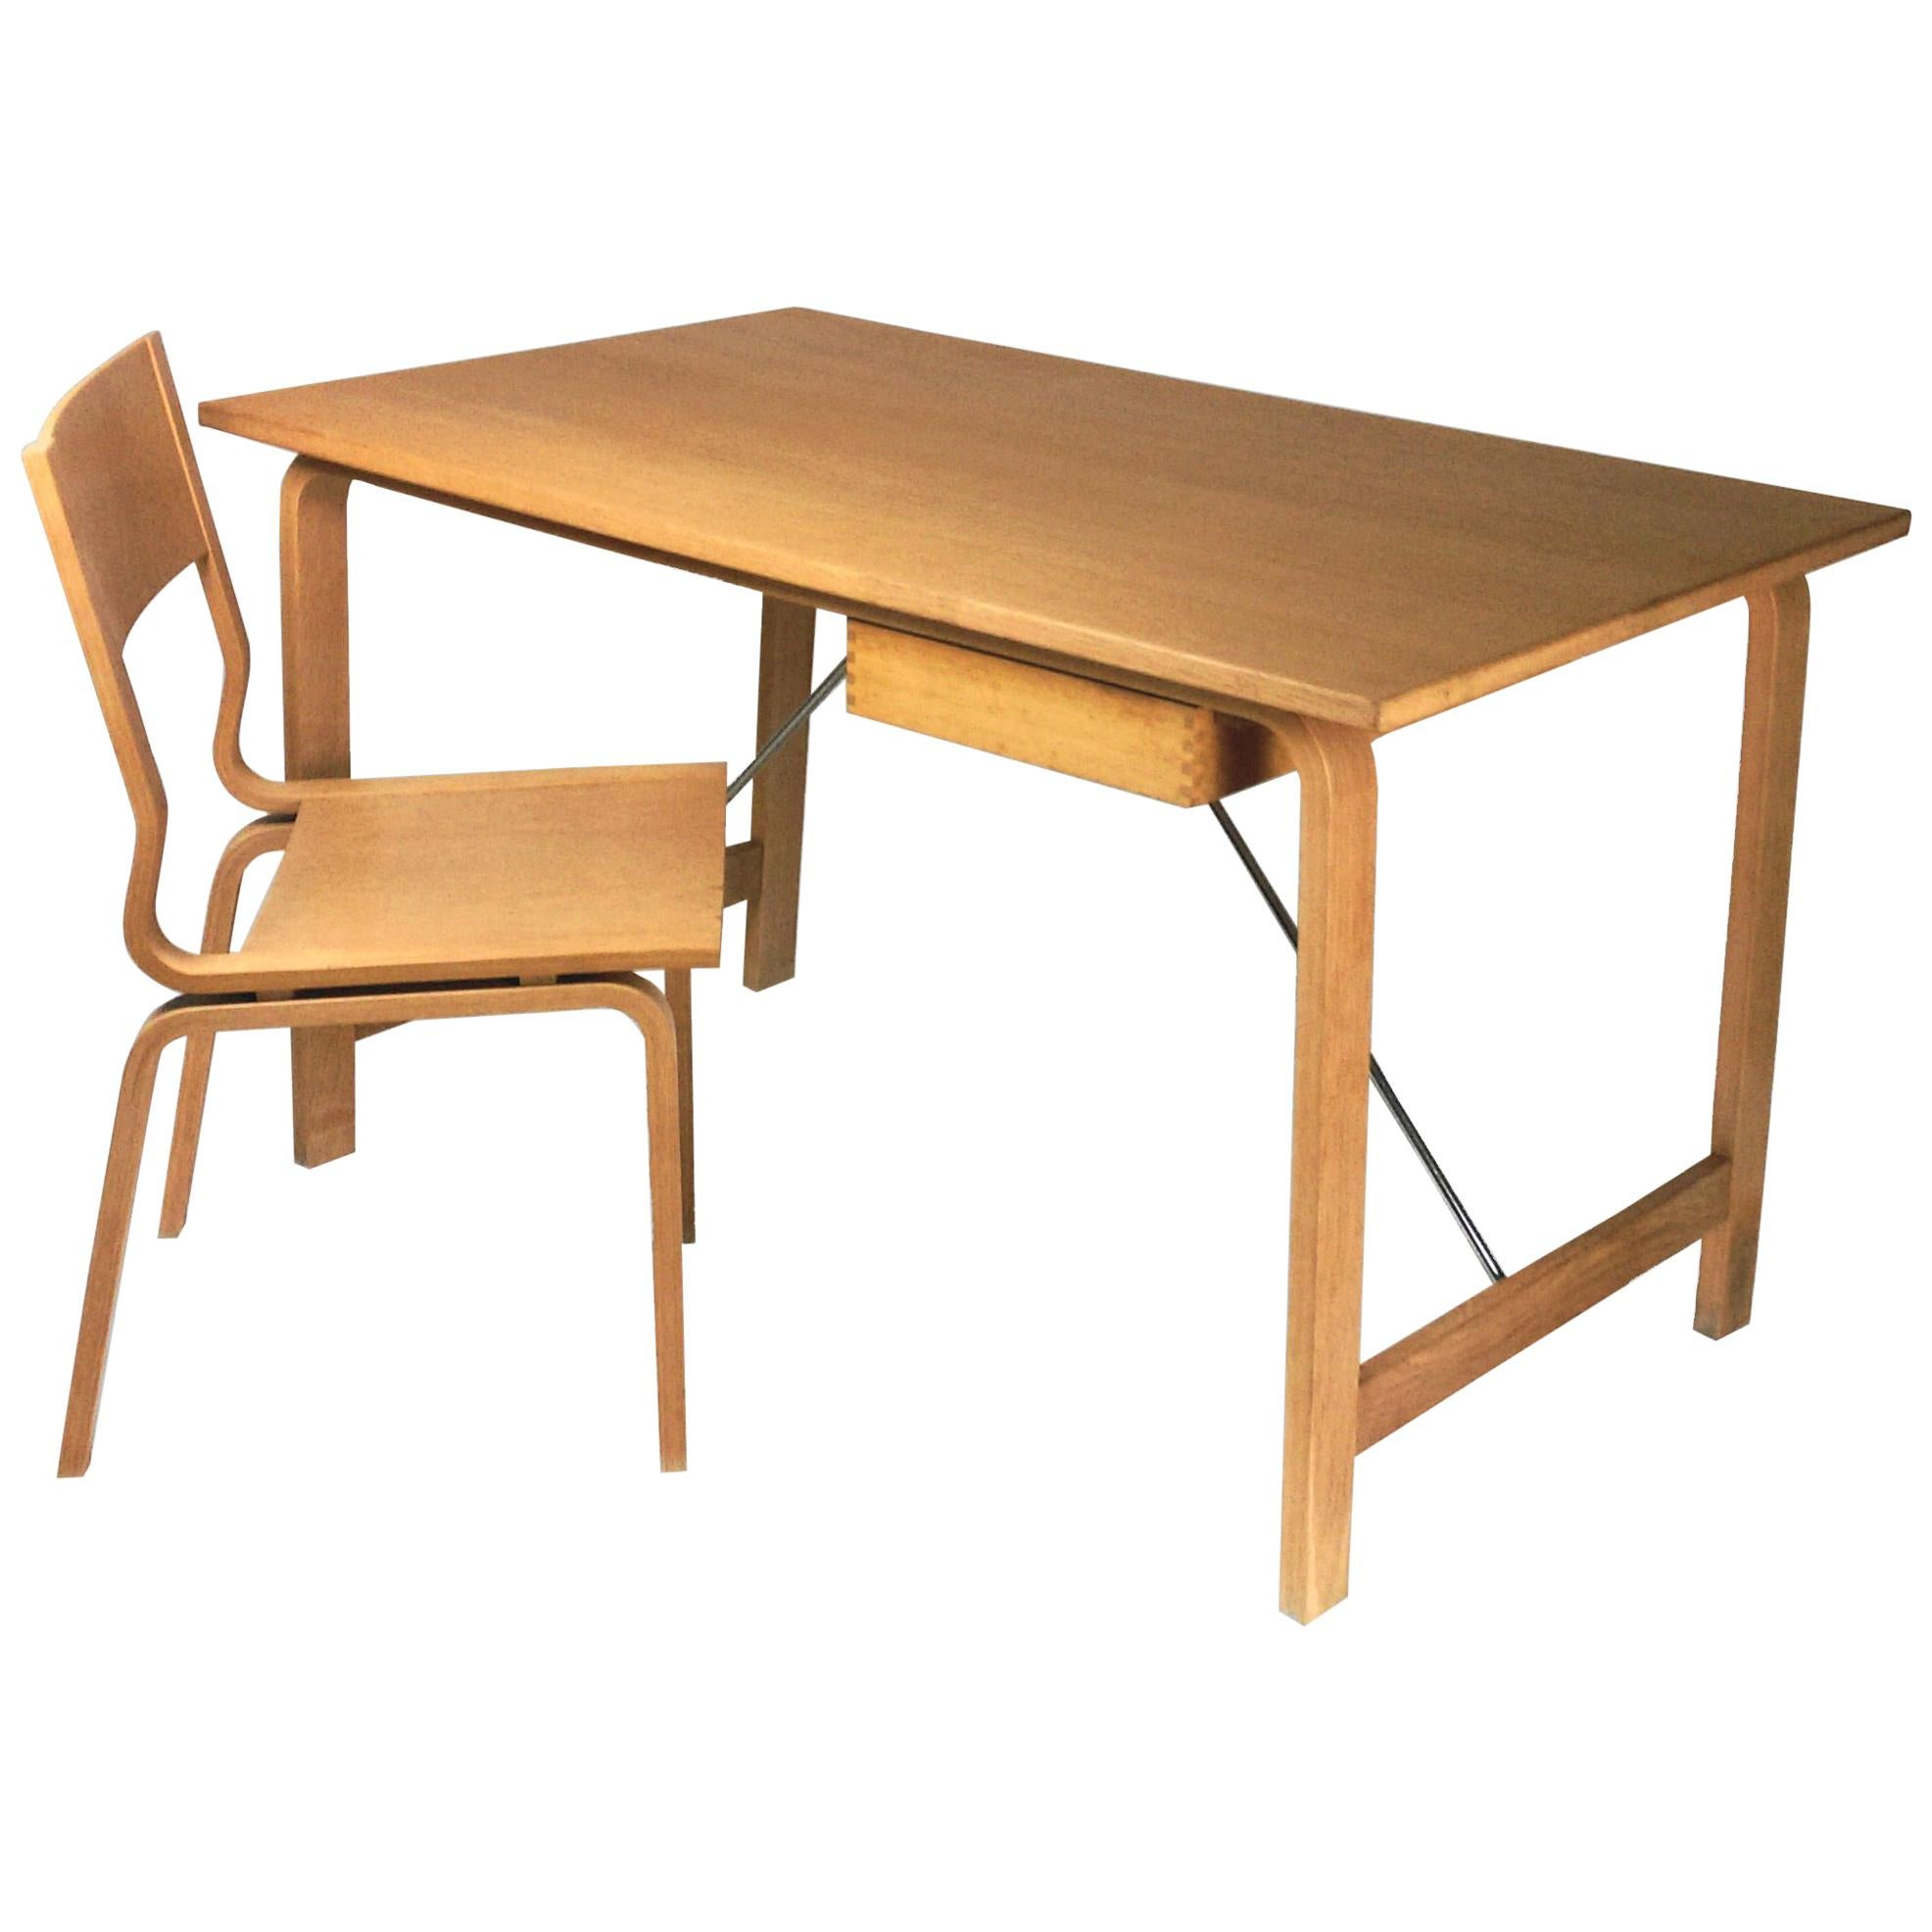 1965 Arne Jacobsen Set Of Four Saint Cathrines Desk And Chair In Oak